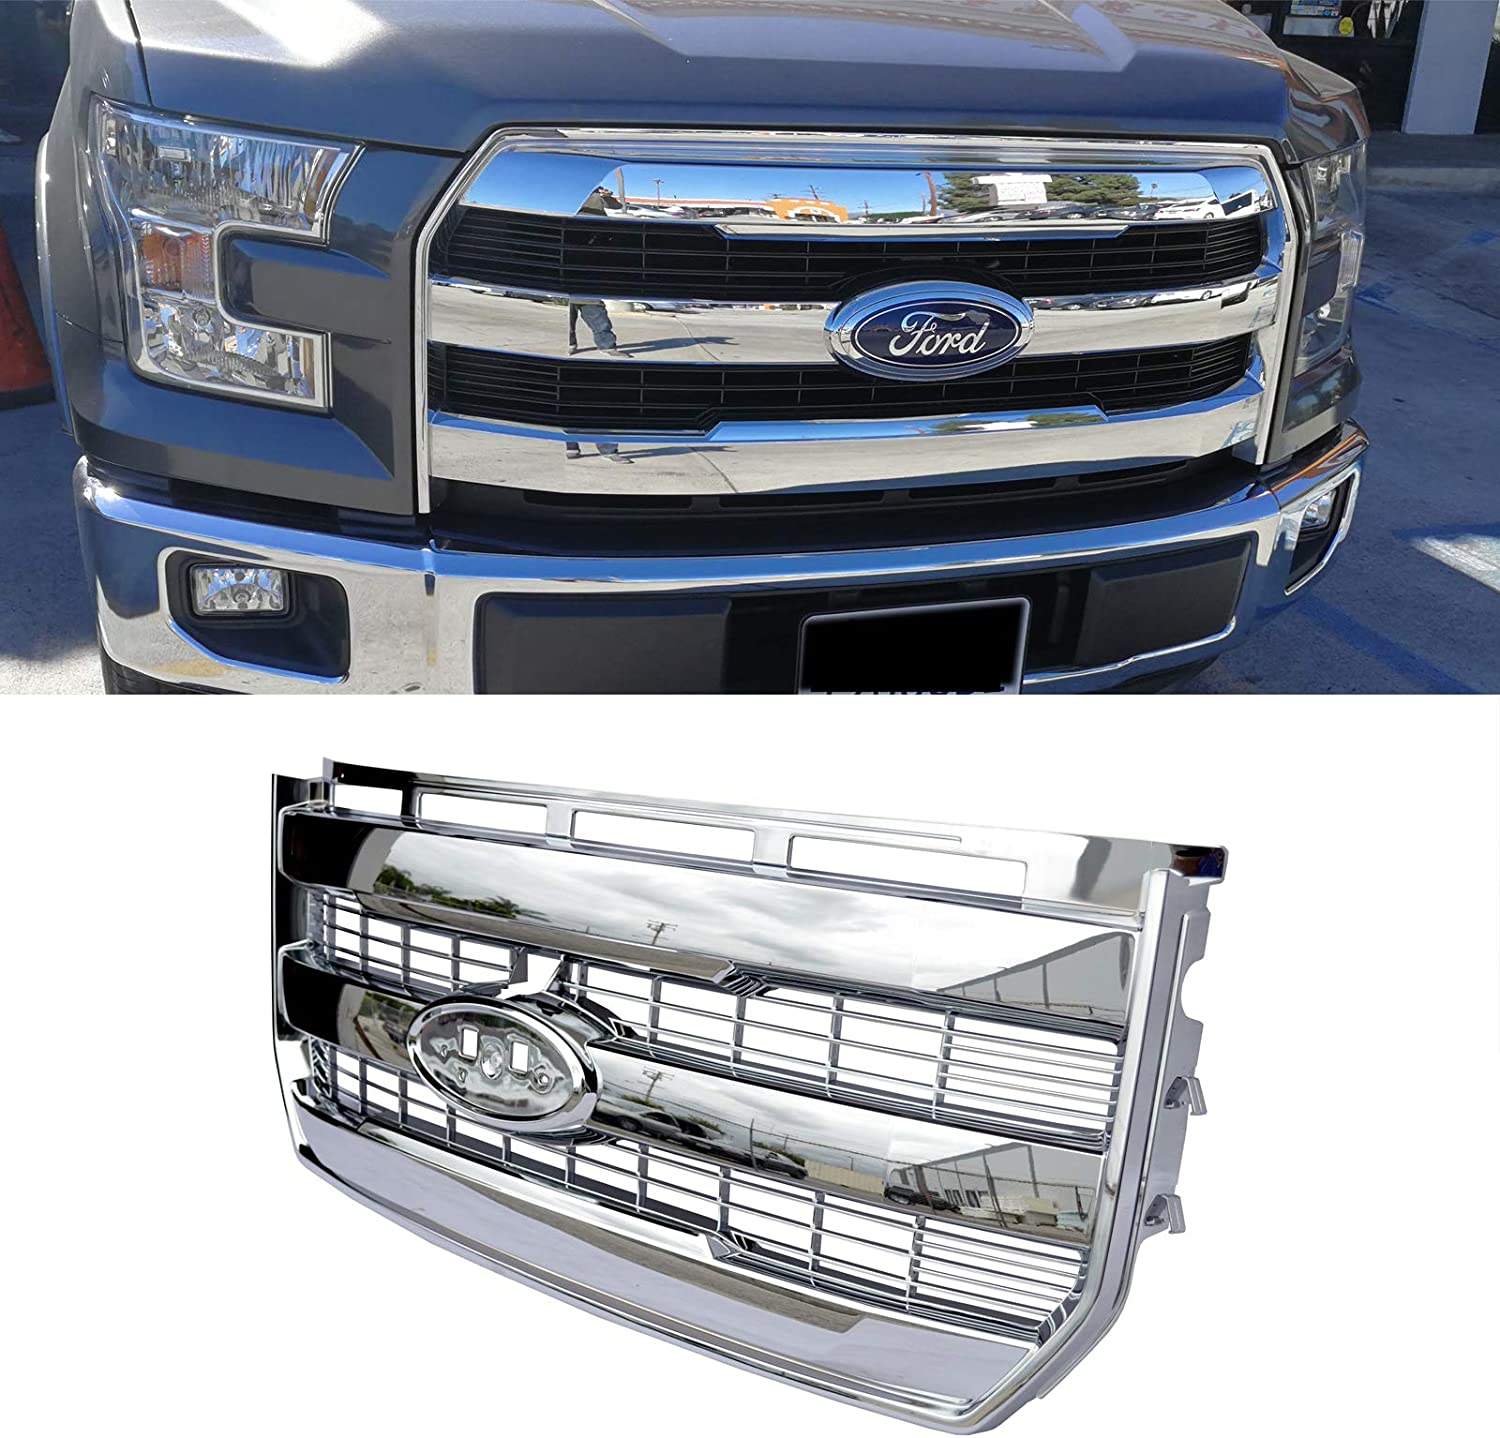 MGPRO 1pc ABS Chrome King Ranch Front Bumper ABS Plastic Grille Style for Ford 2015-2017 F-150 Not For Raptor /& Raptor SVT Models